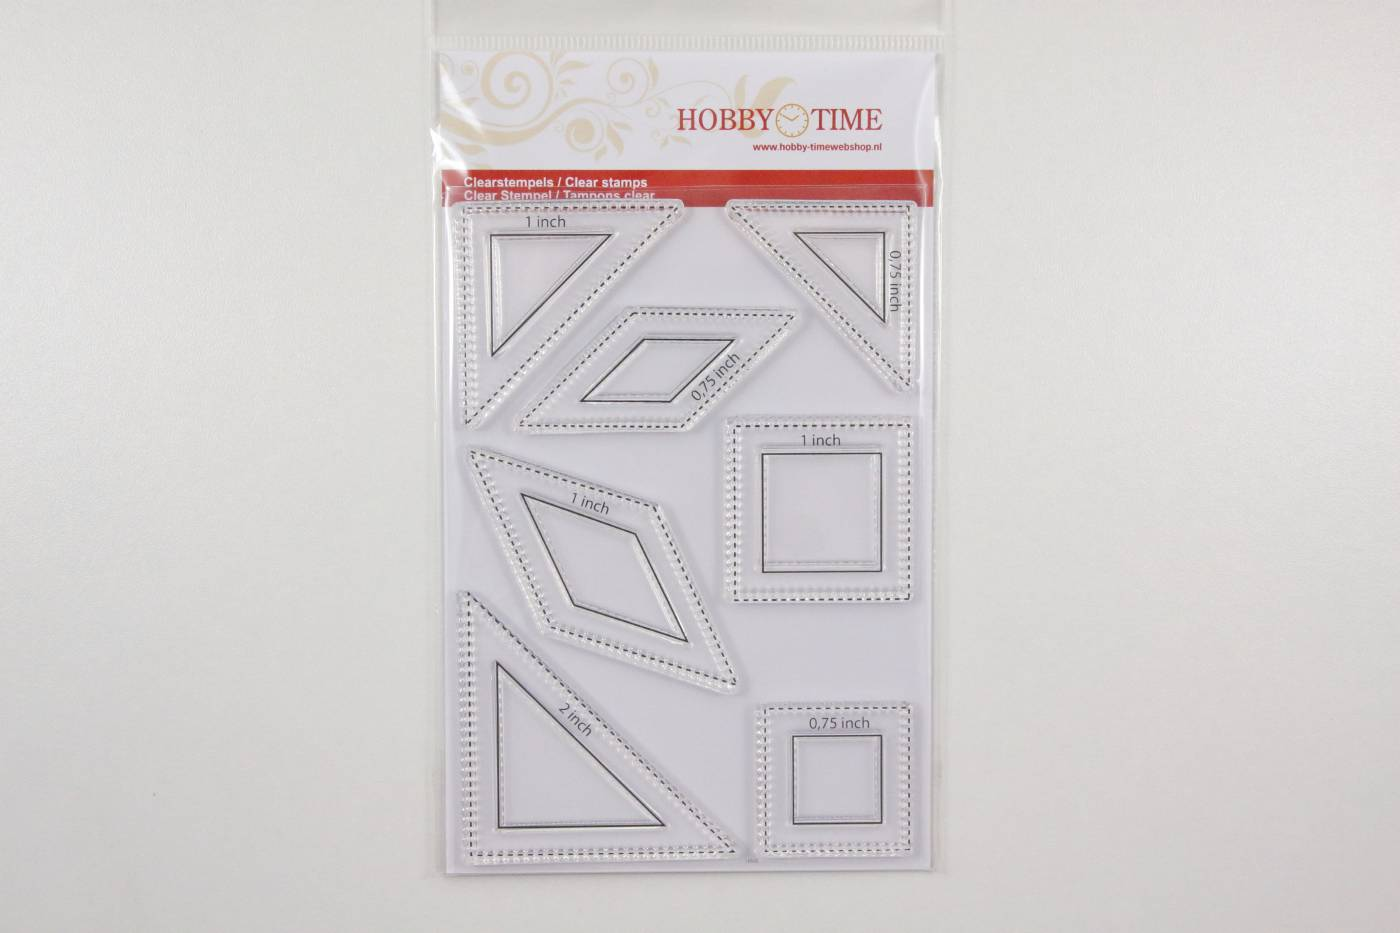 Correctie quiltstempel hobby time Le moy